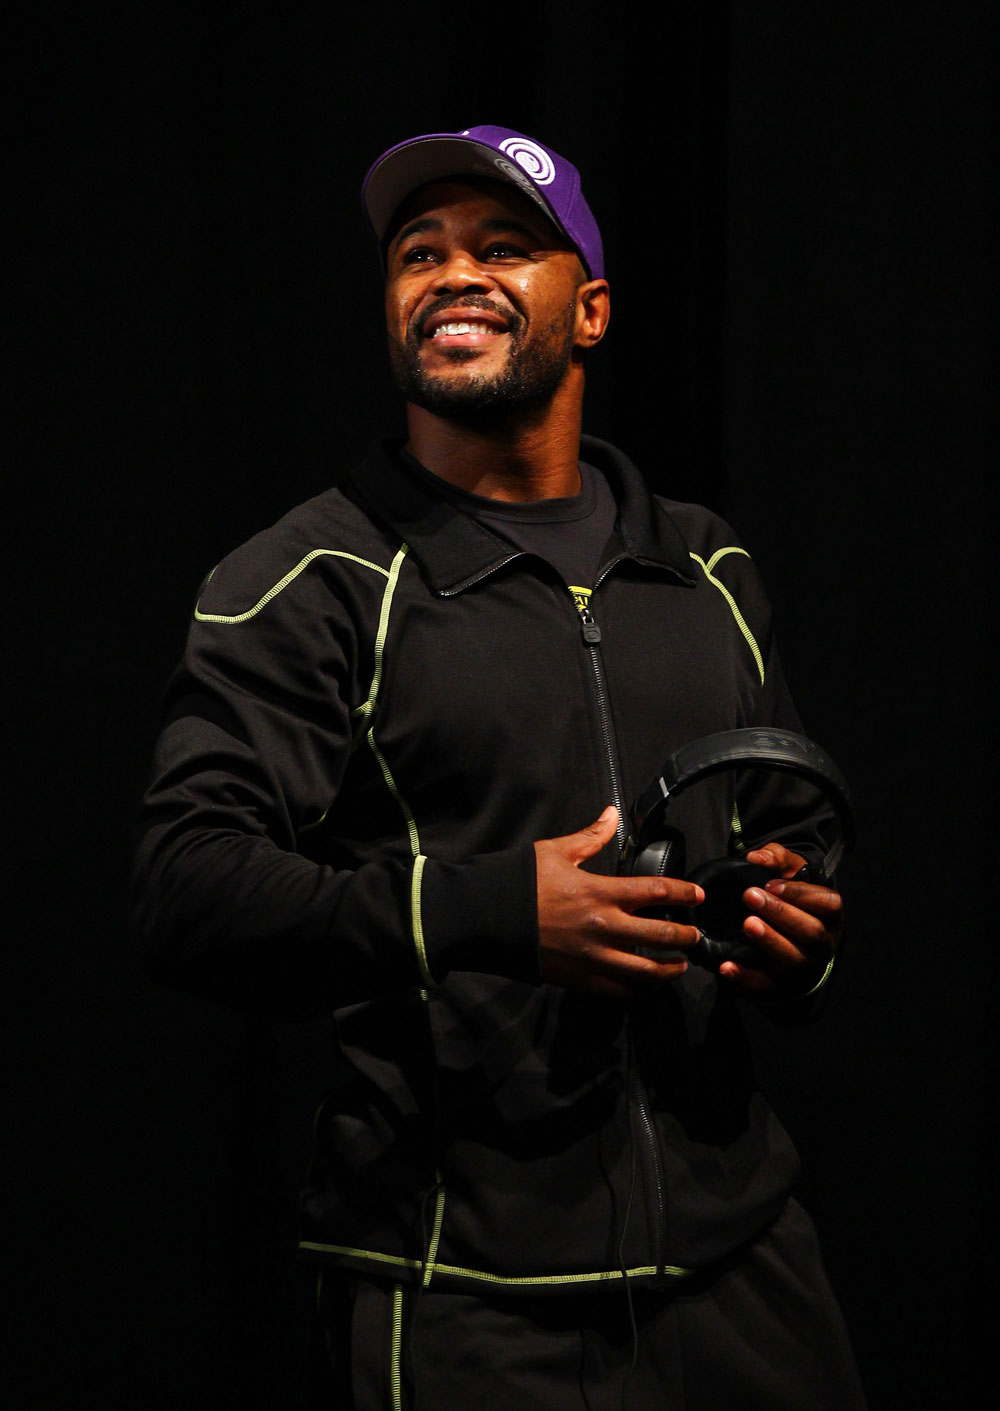 ATLANTA, GA - APRIL 20:  Light Heavyweight fighter Rashad Evans reacts during the UFC 145 official weigh in at Fox Theatre on April 20, 2012 in Atlanta, Georgia.  (Photo by Al Bello/Zuffa LLC/Zuffa LLC via Getty Images)